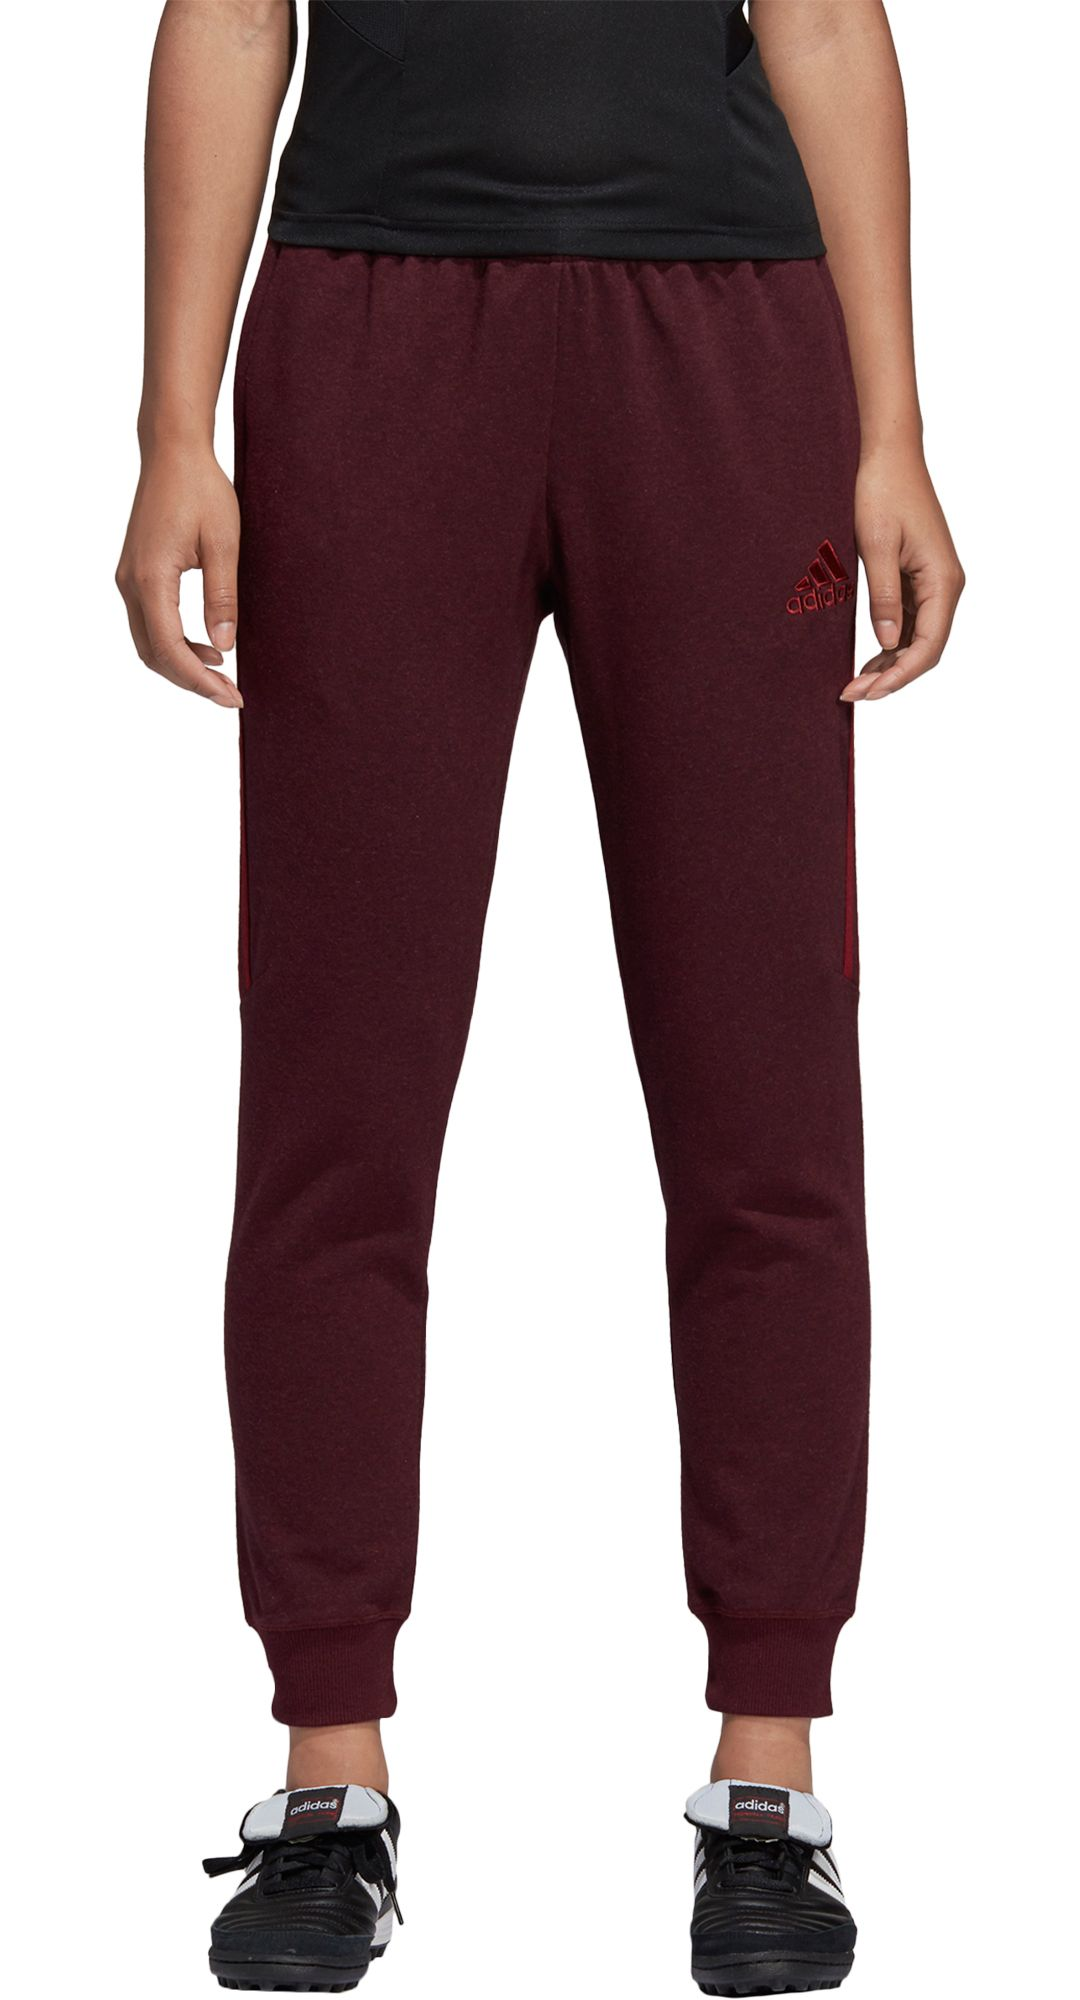 0bc0e6709df5ac adidas Women's French Terry Tiro 18 Pants | DICK'S Sporting Goods